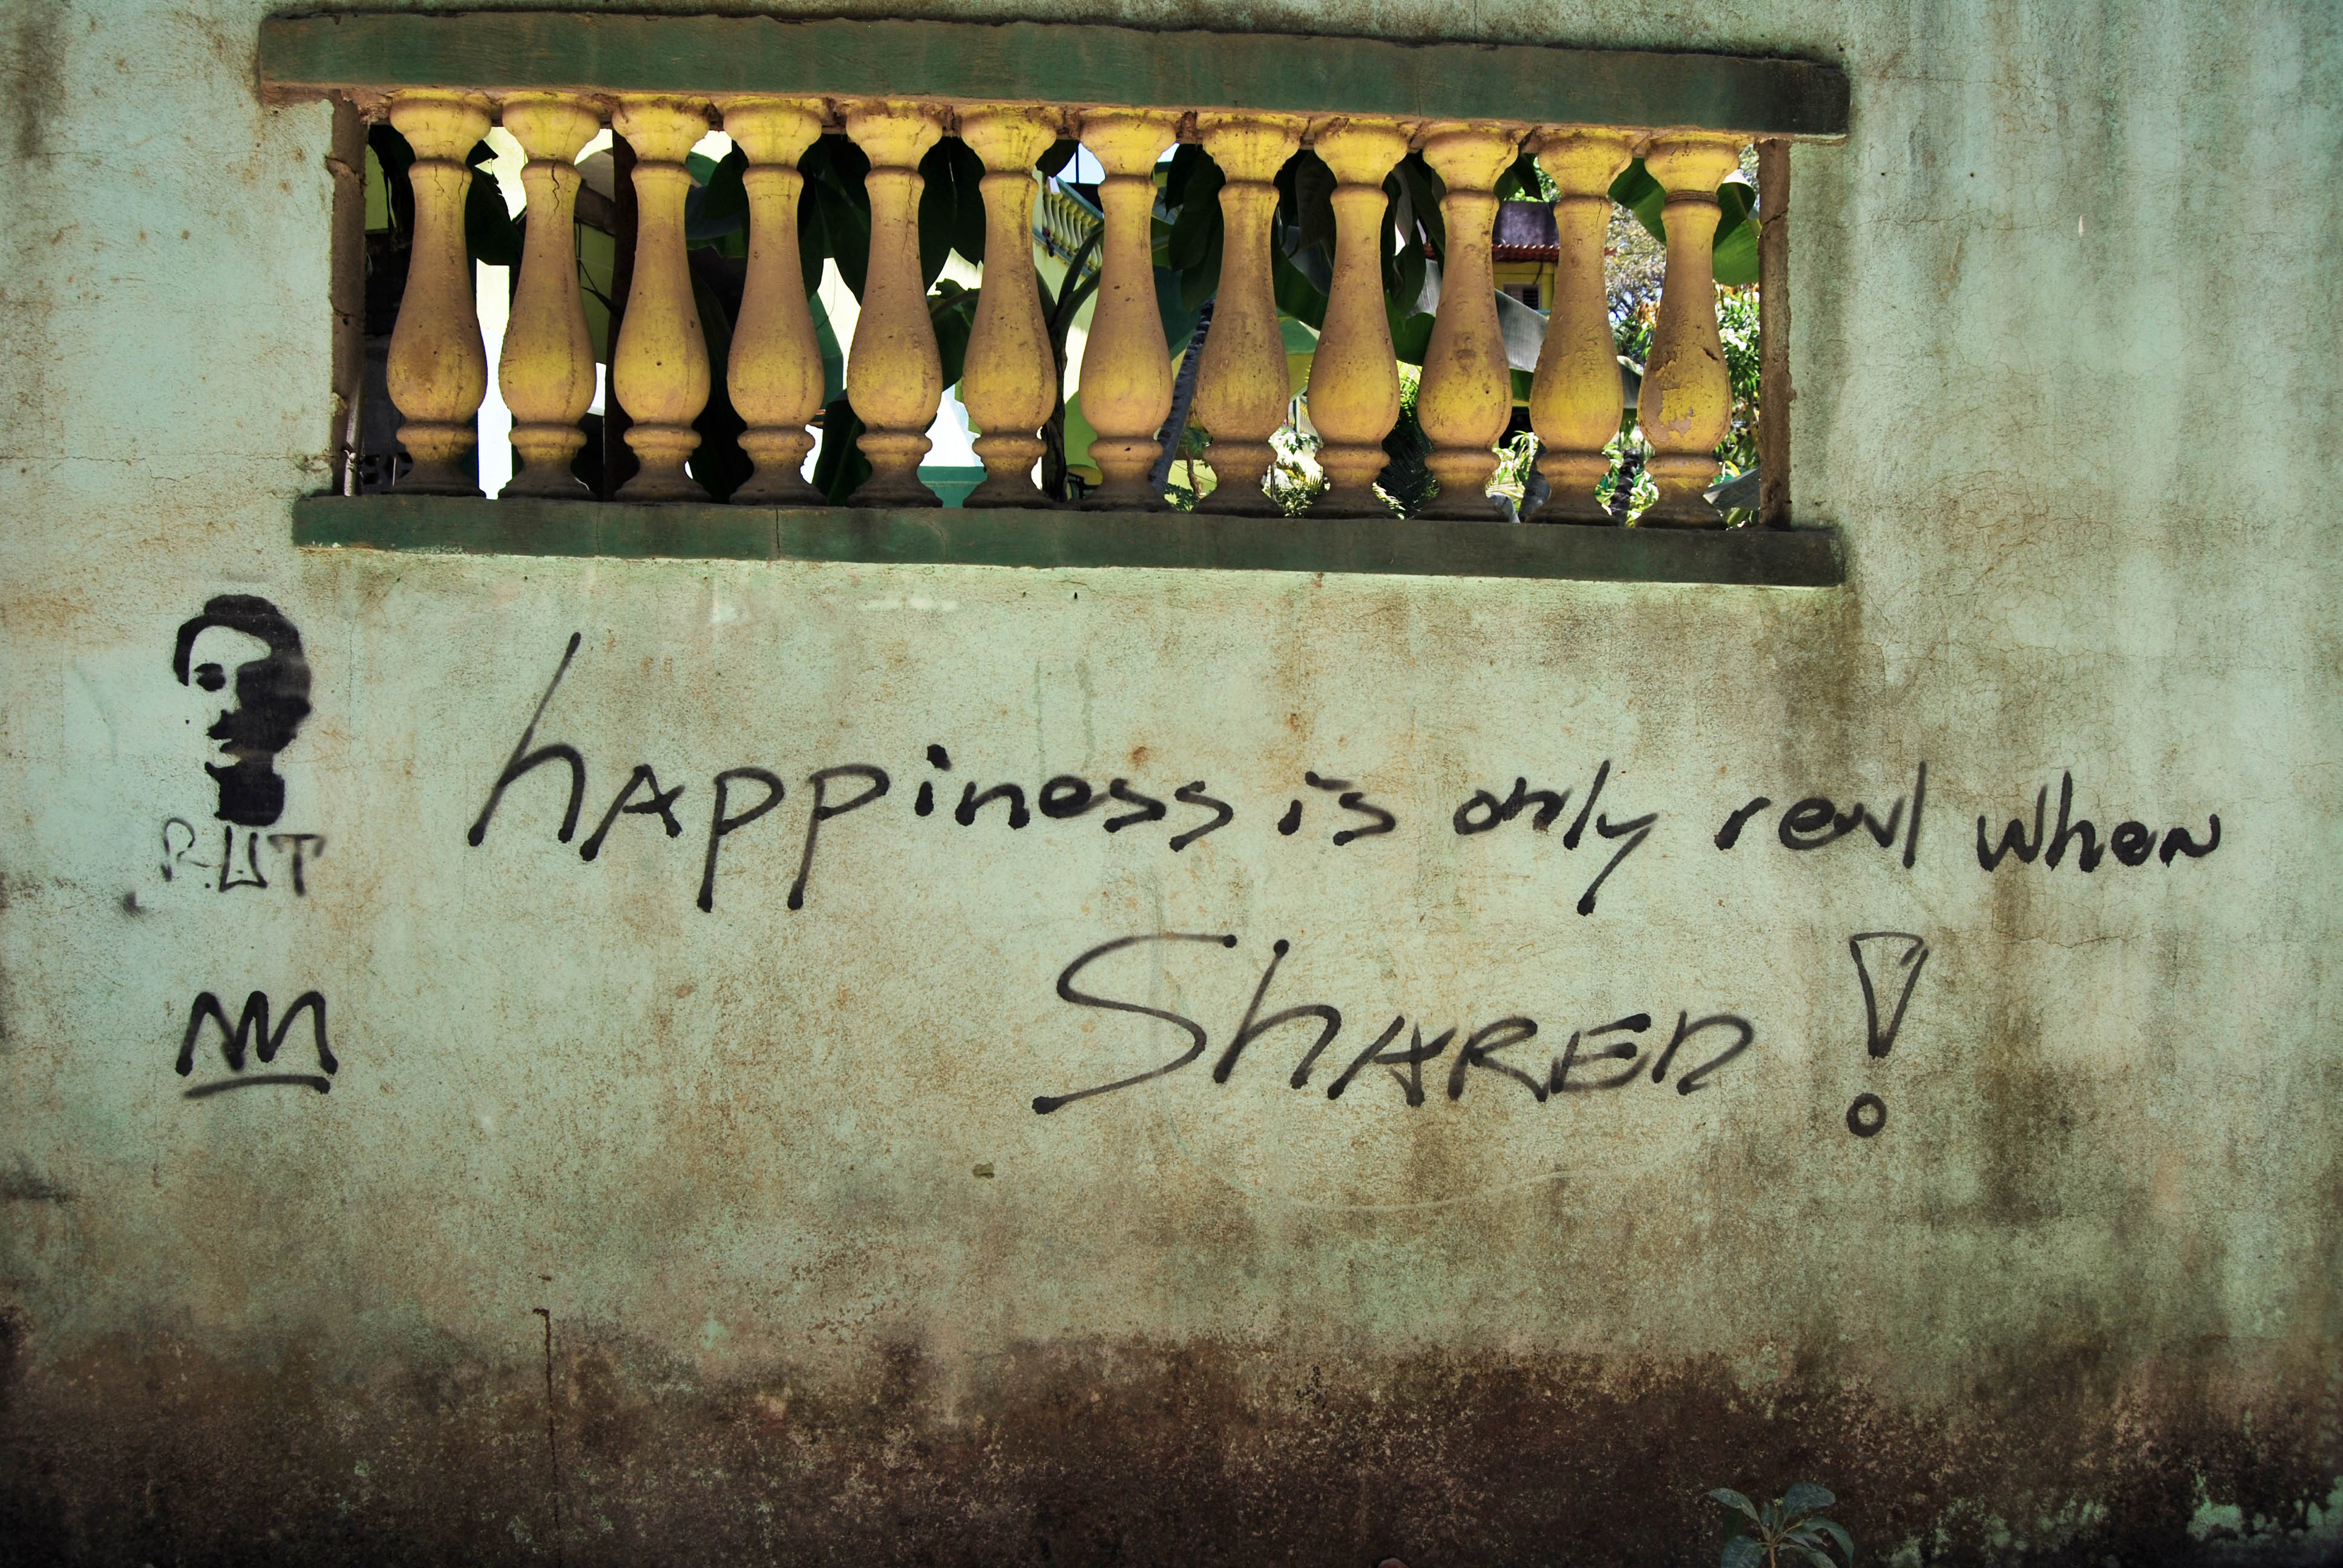 Happiness is Only Real When Shared (Malpais, Costa Rica)